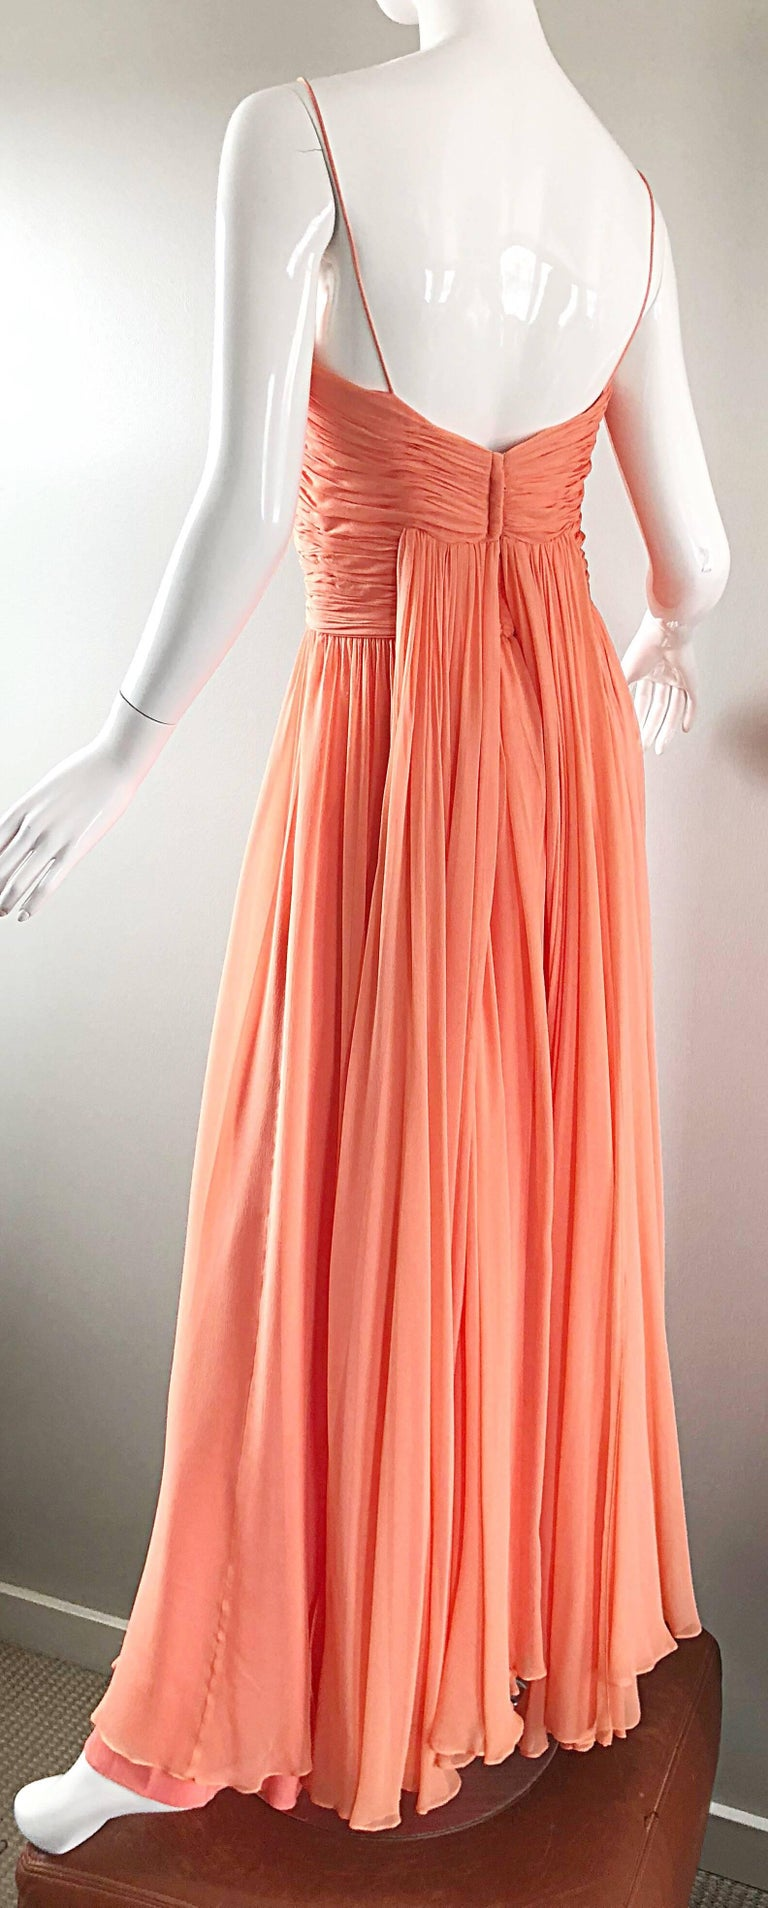 Gorgeous 1950s Saks 5th Ave. Salmon / Coral Pink Silk Chiffon Vintage 50s Gown For Sale 3